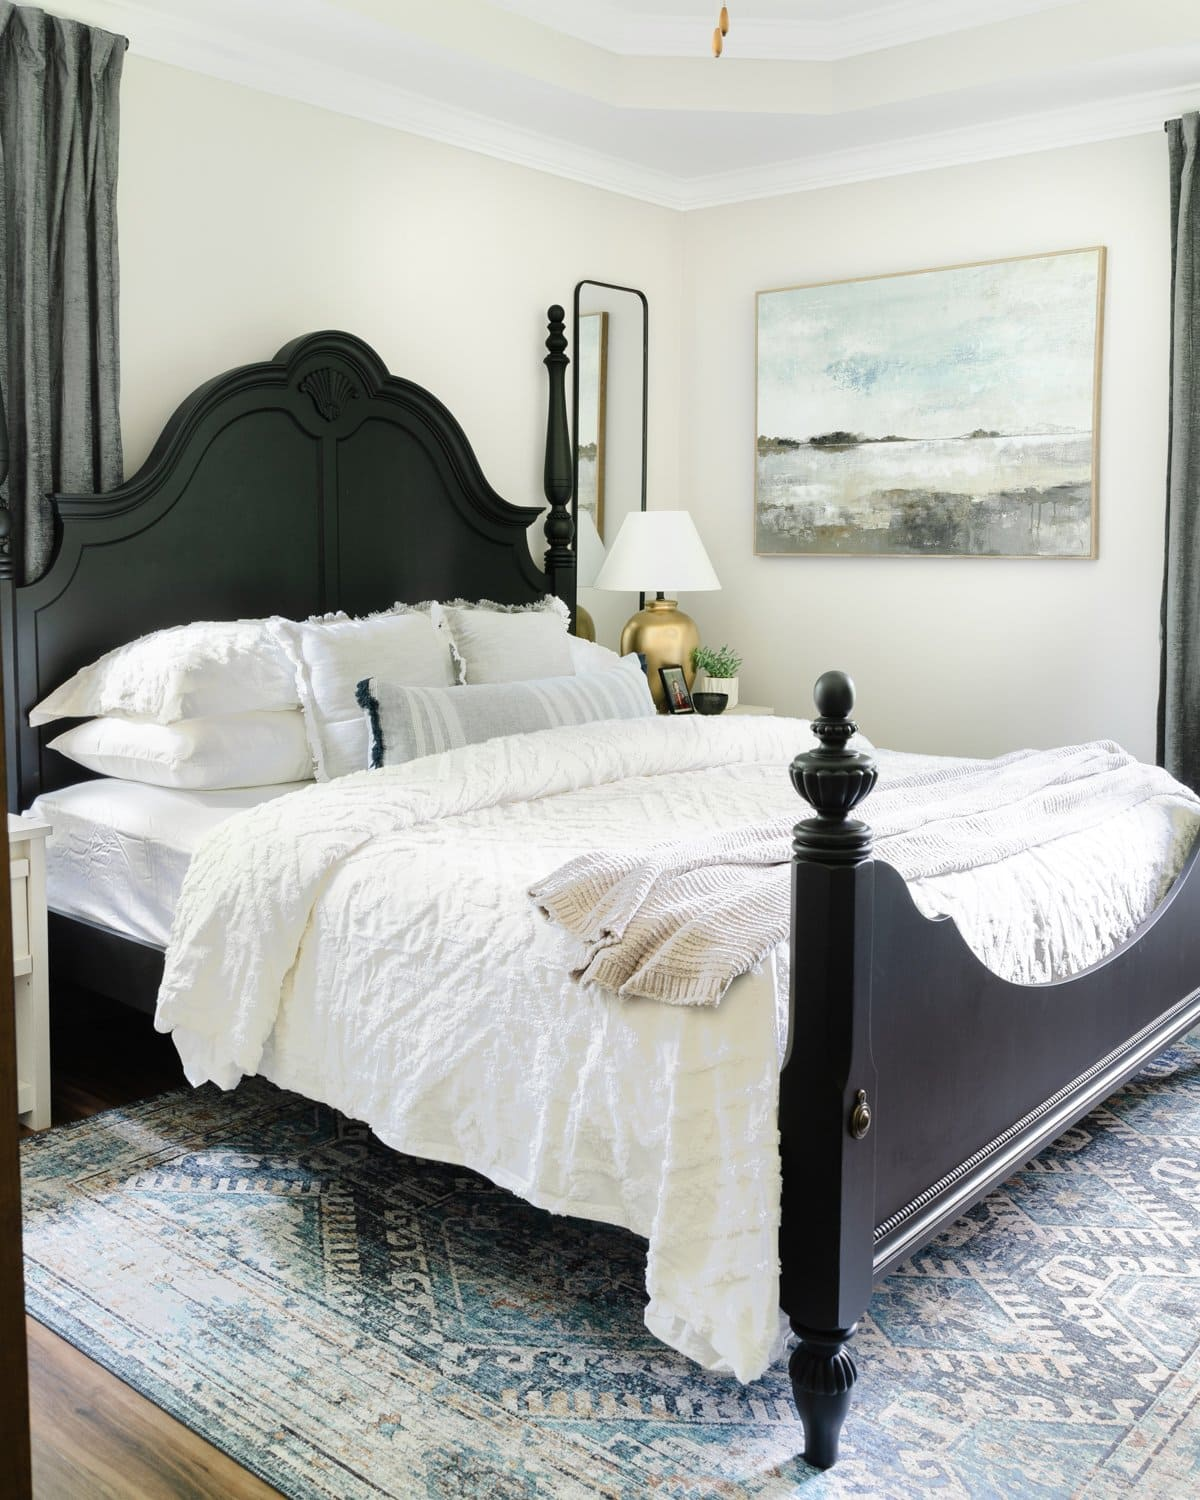 10 Small Bedroom Ideas to Make Your Space Feel Bigger